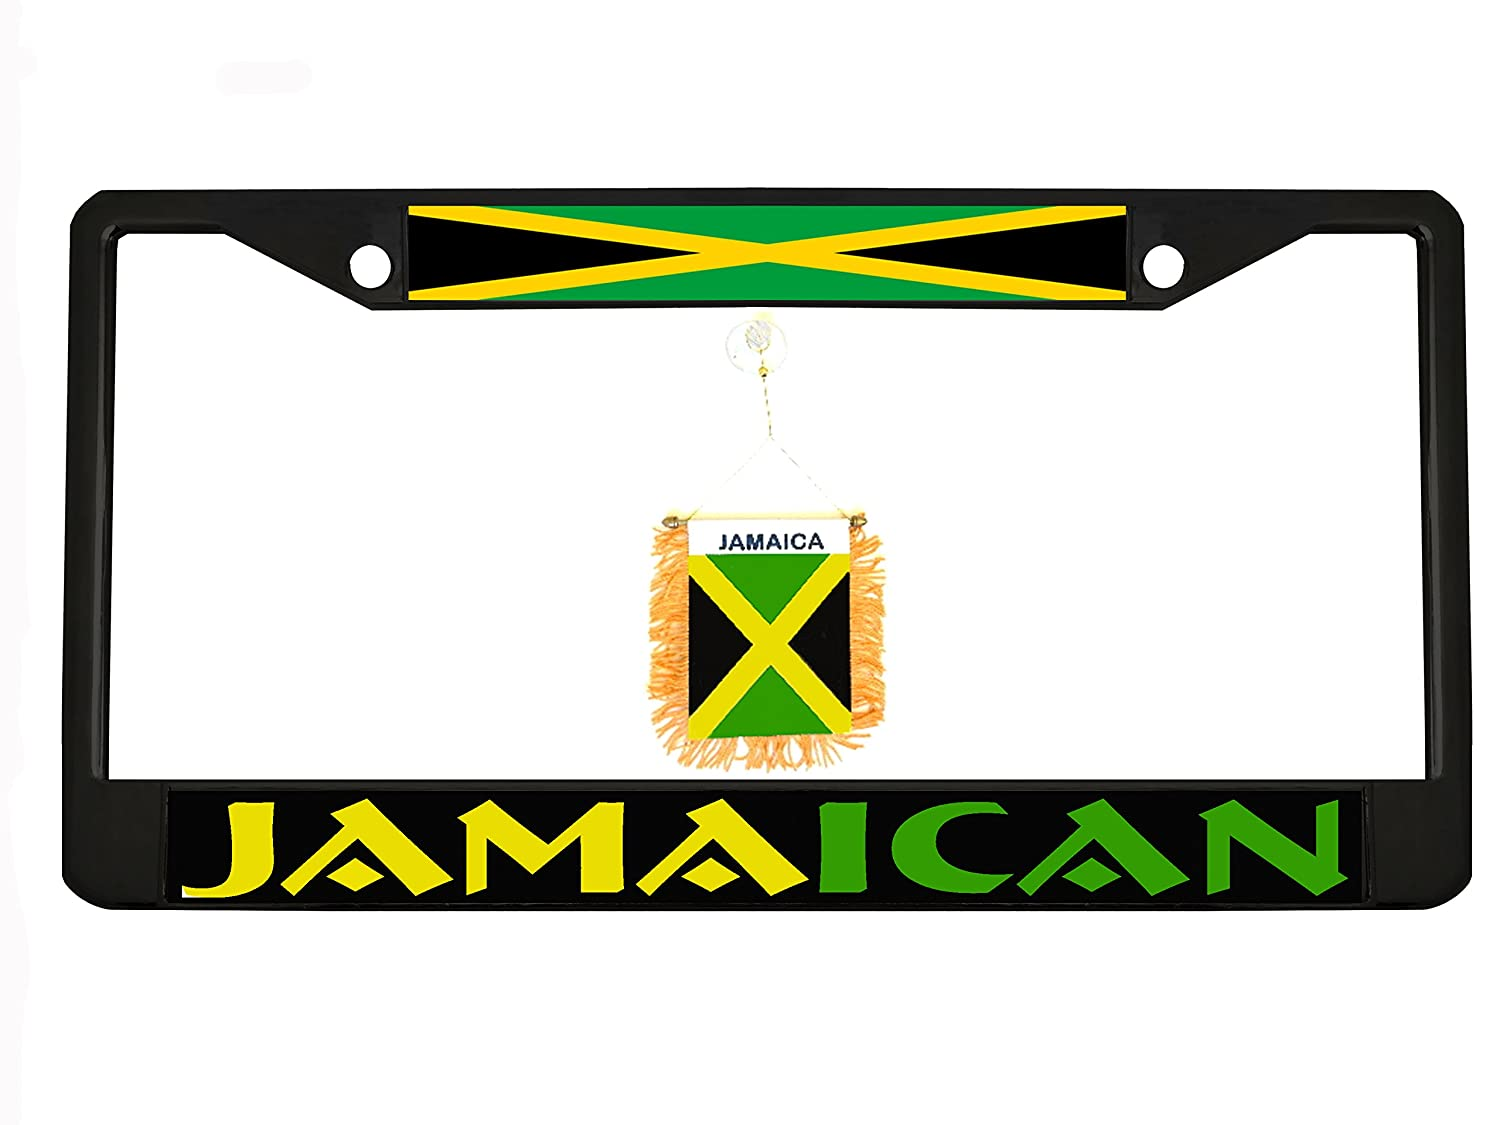 Jamaican black Metal Auto License Plate Frame Car Tag Holder with car banner flag hanger New Custom Auto Tag NCAT2BYGC1